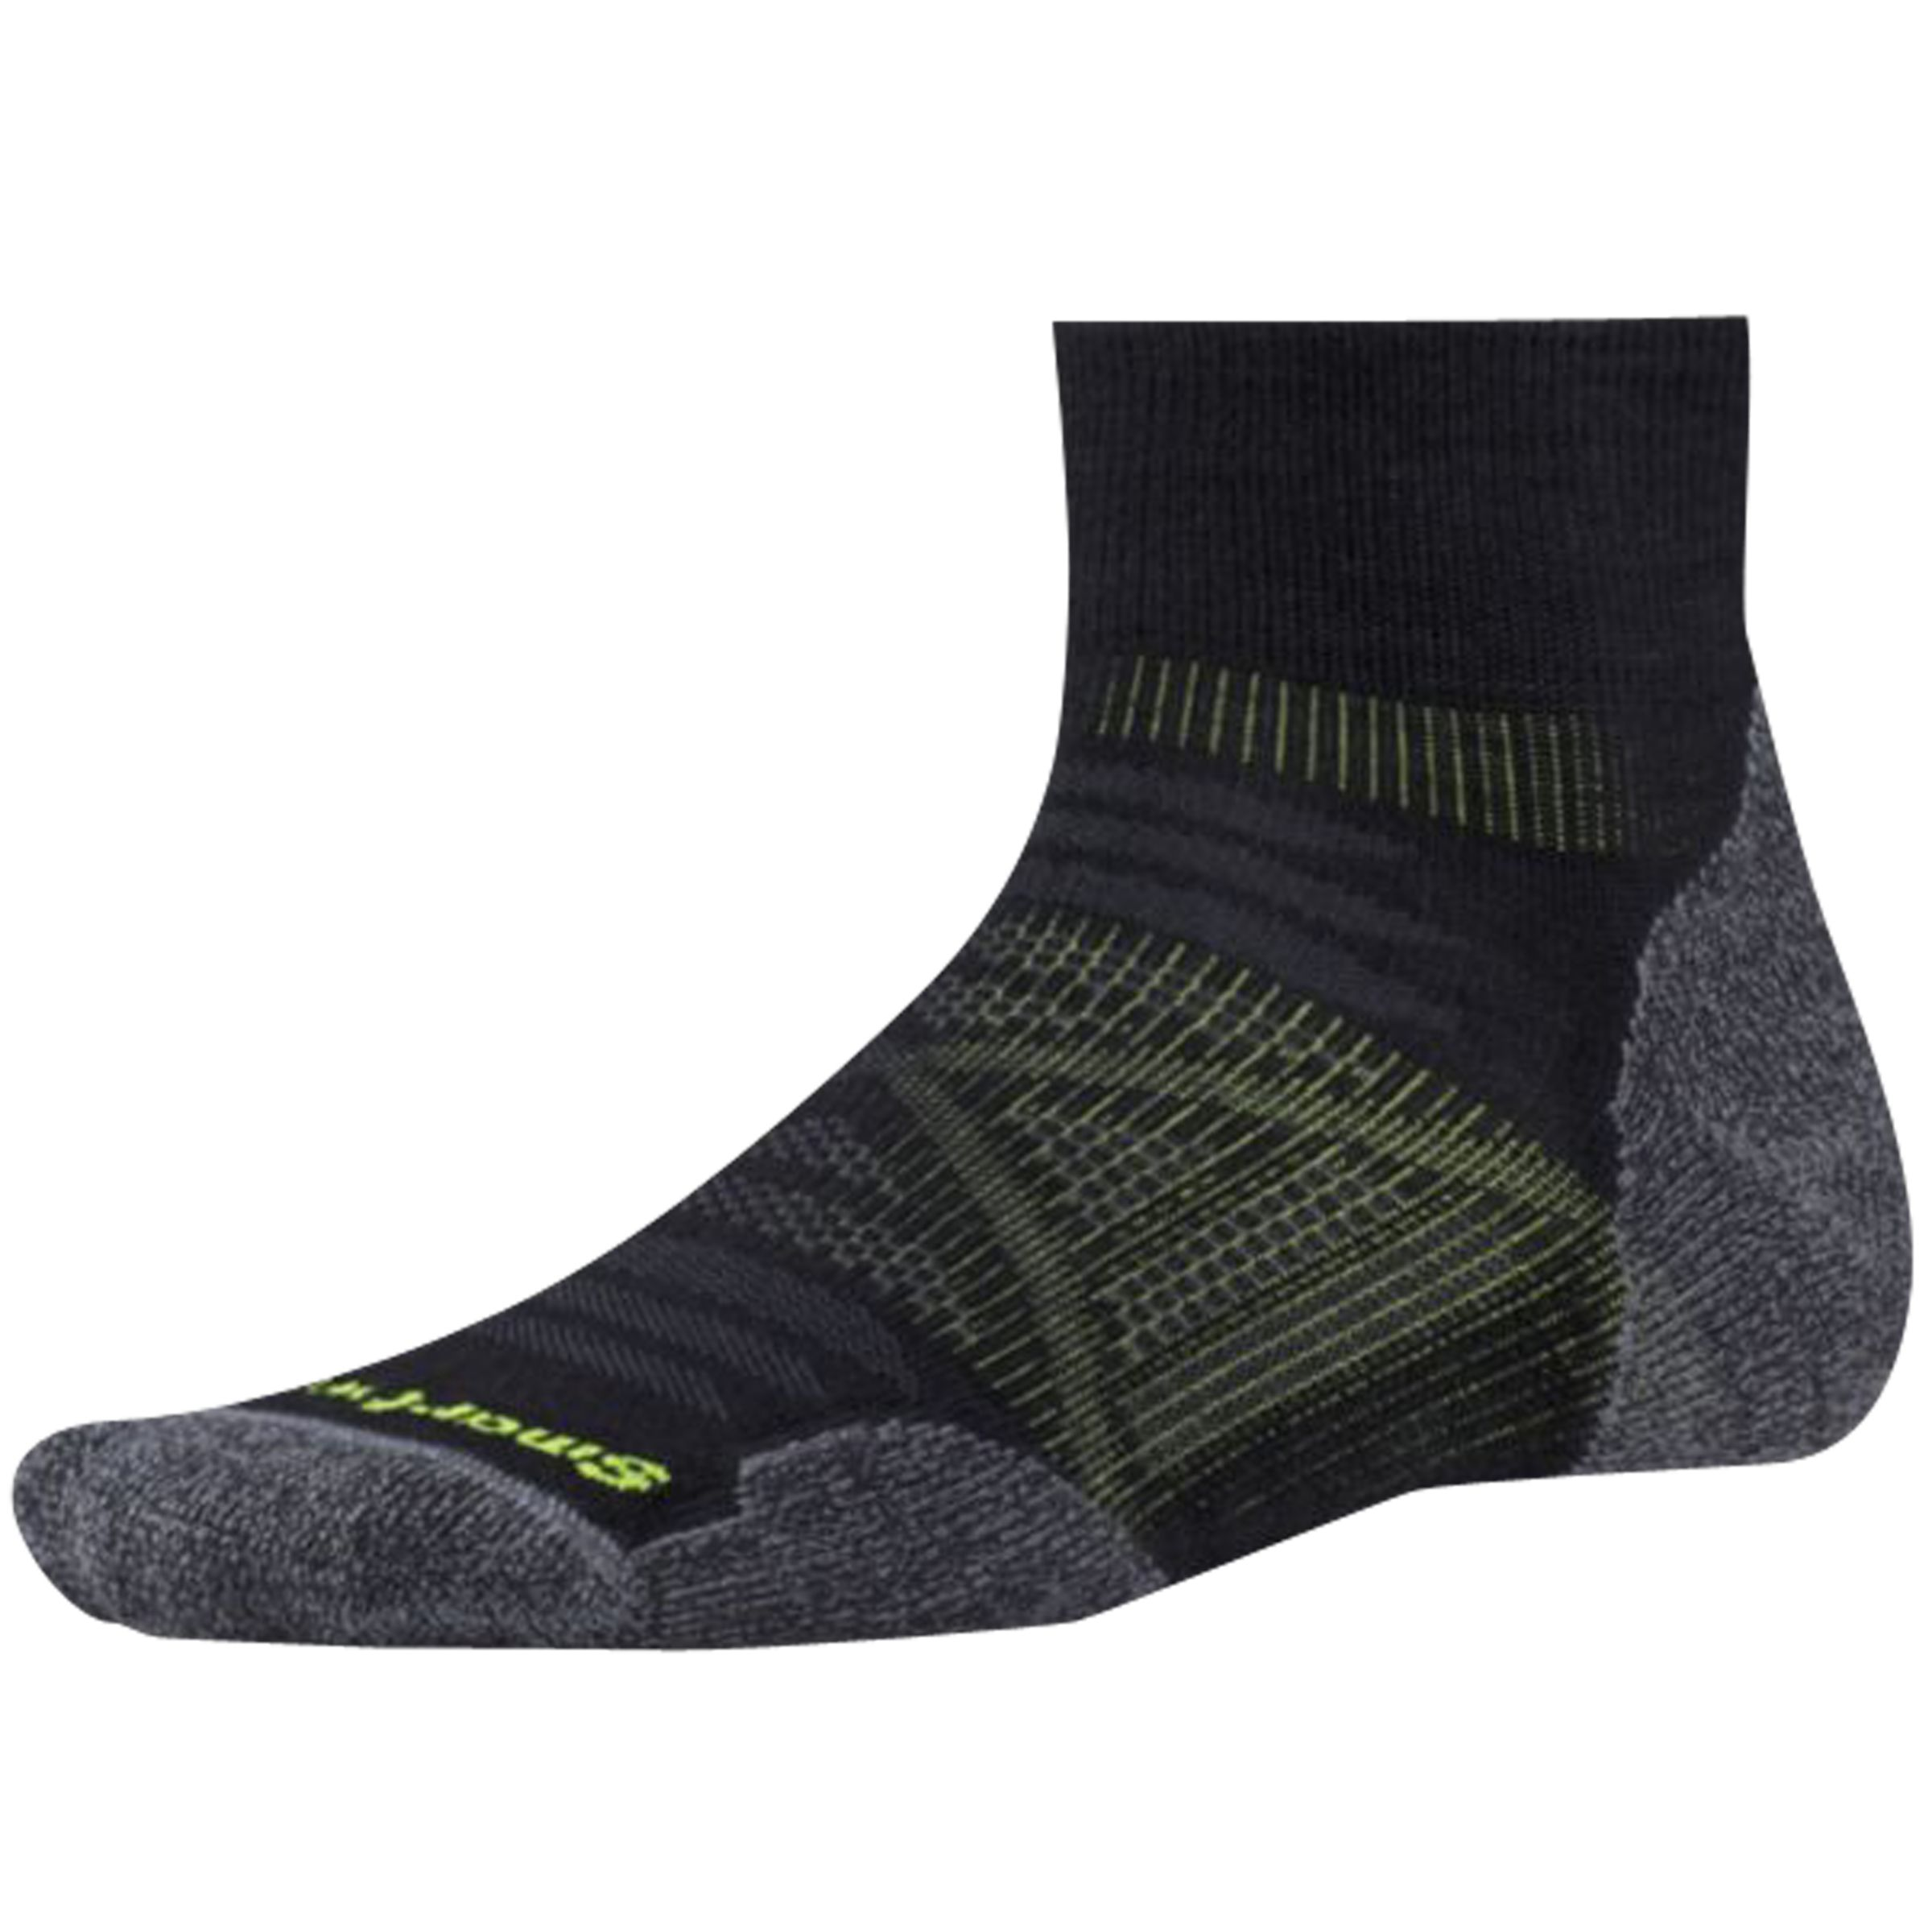 Smartwool SmartWool PhD Outdoor Light Mini Socks, Black